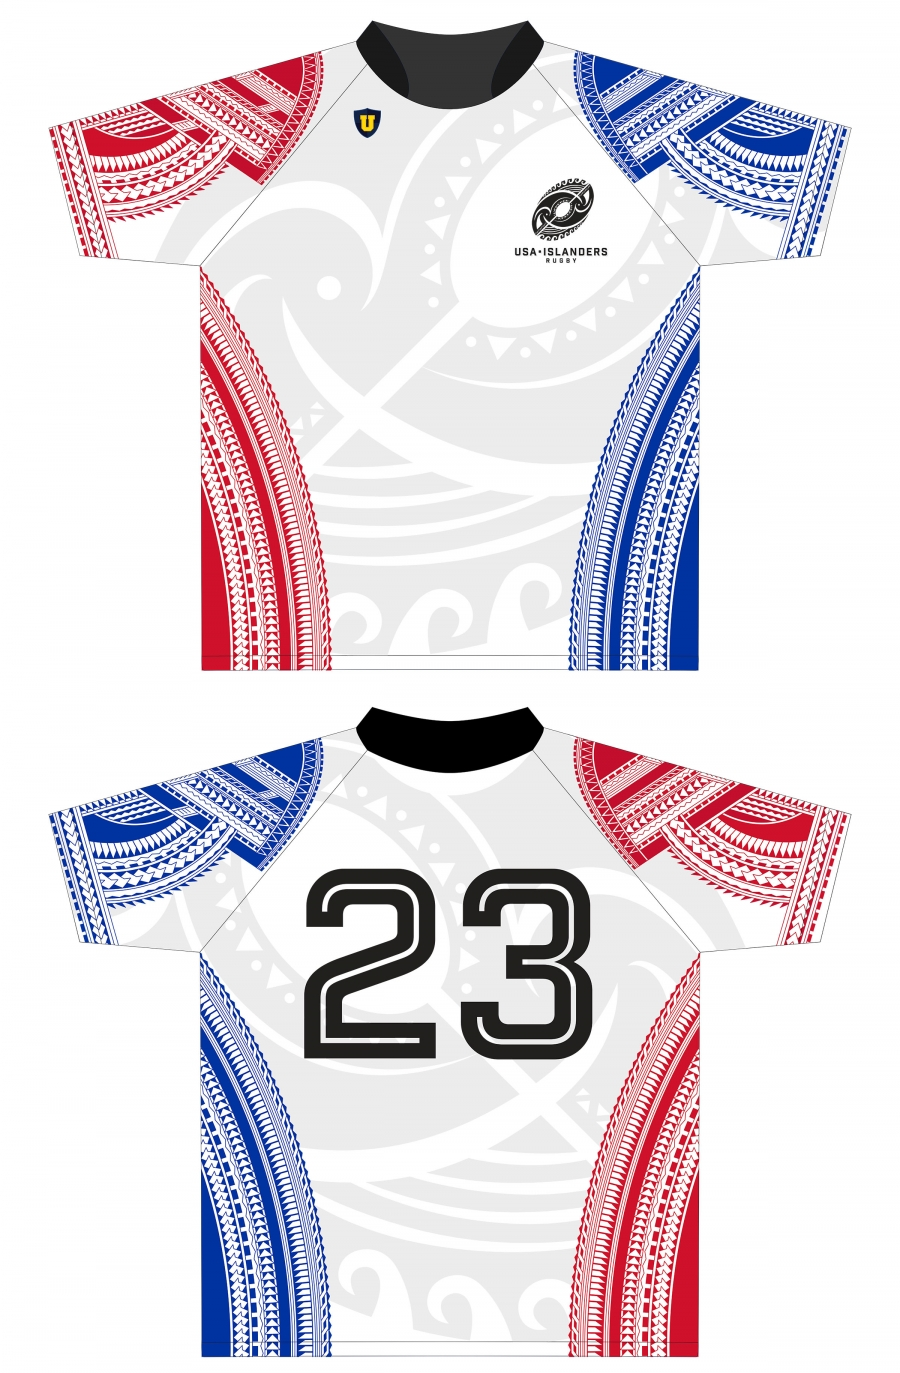 Red, White and Blue custom jerseys for the USA Islanders rugby team